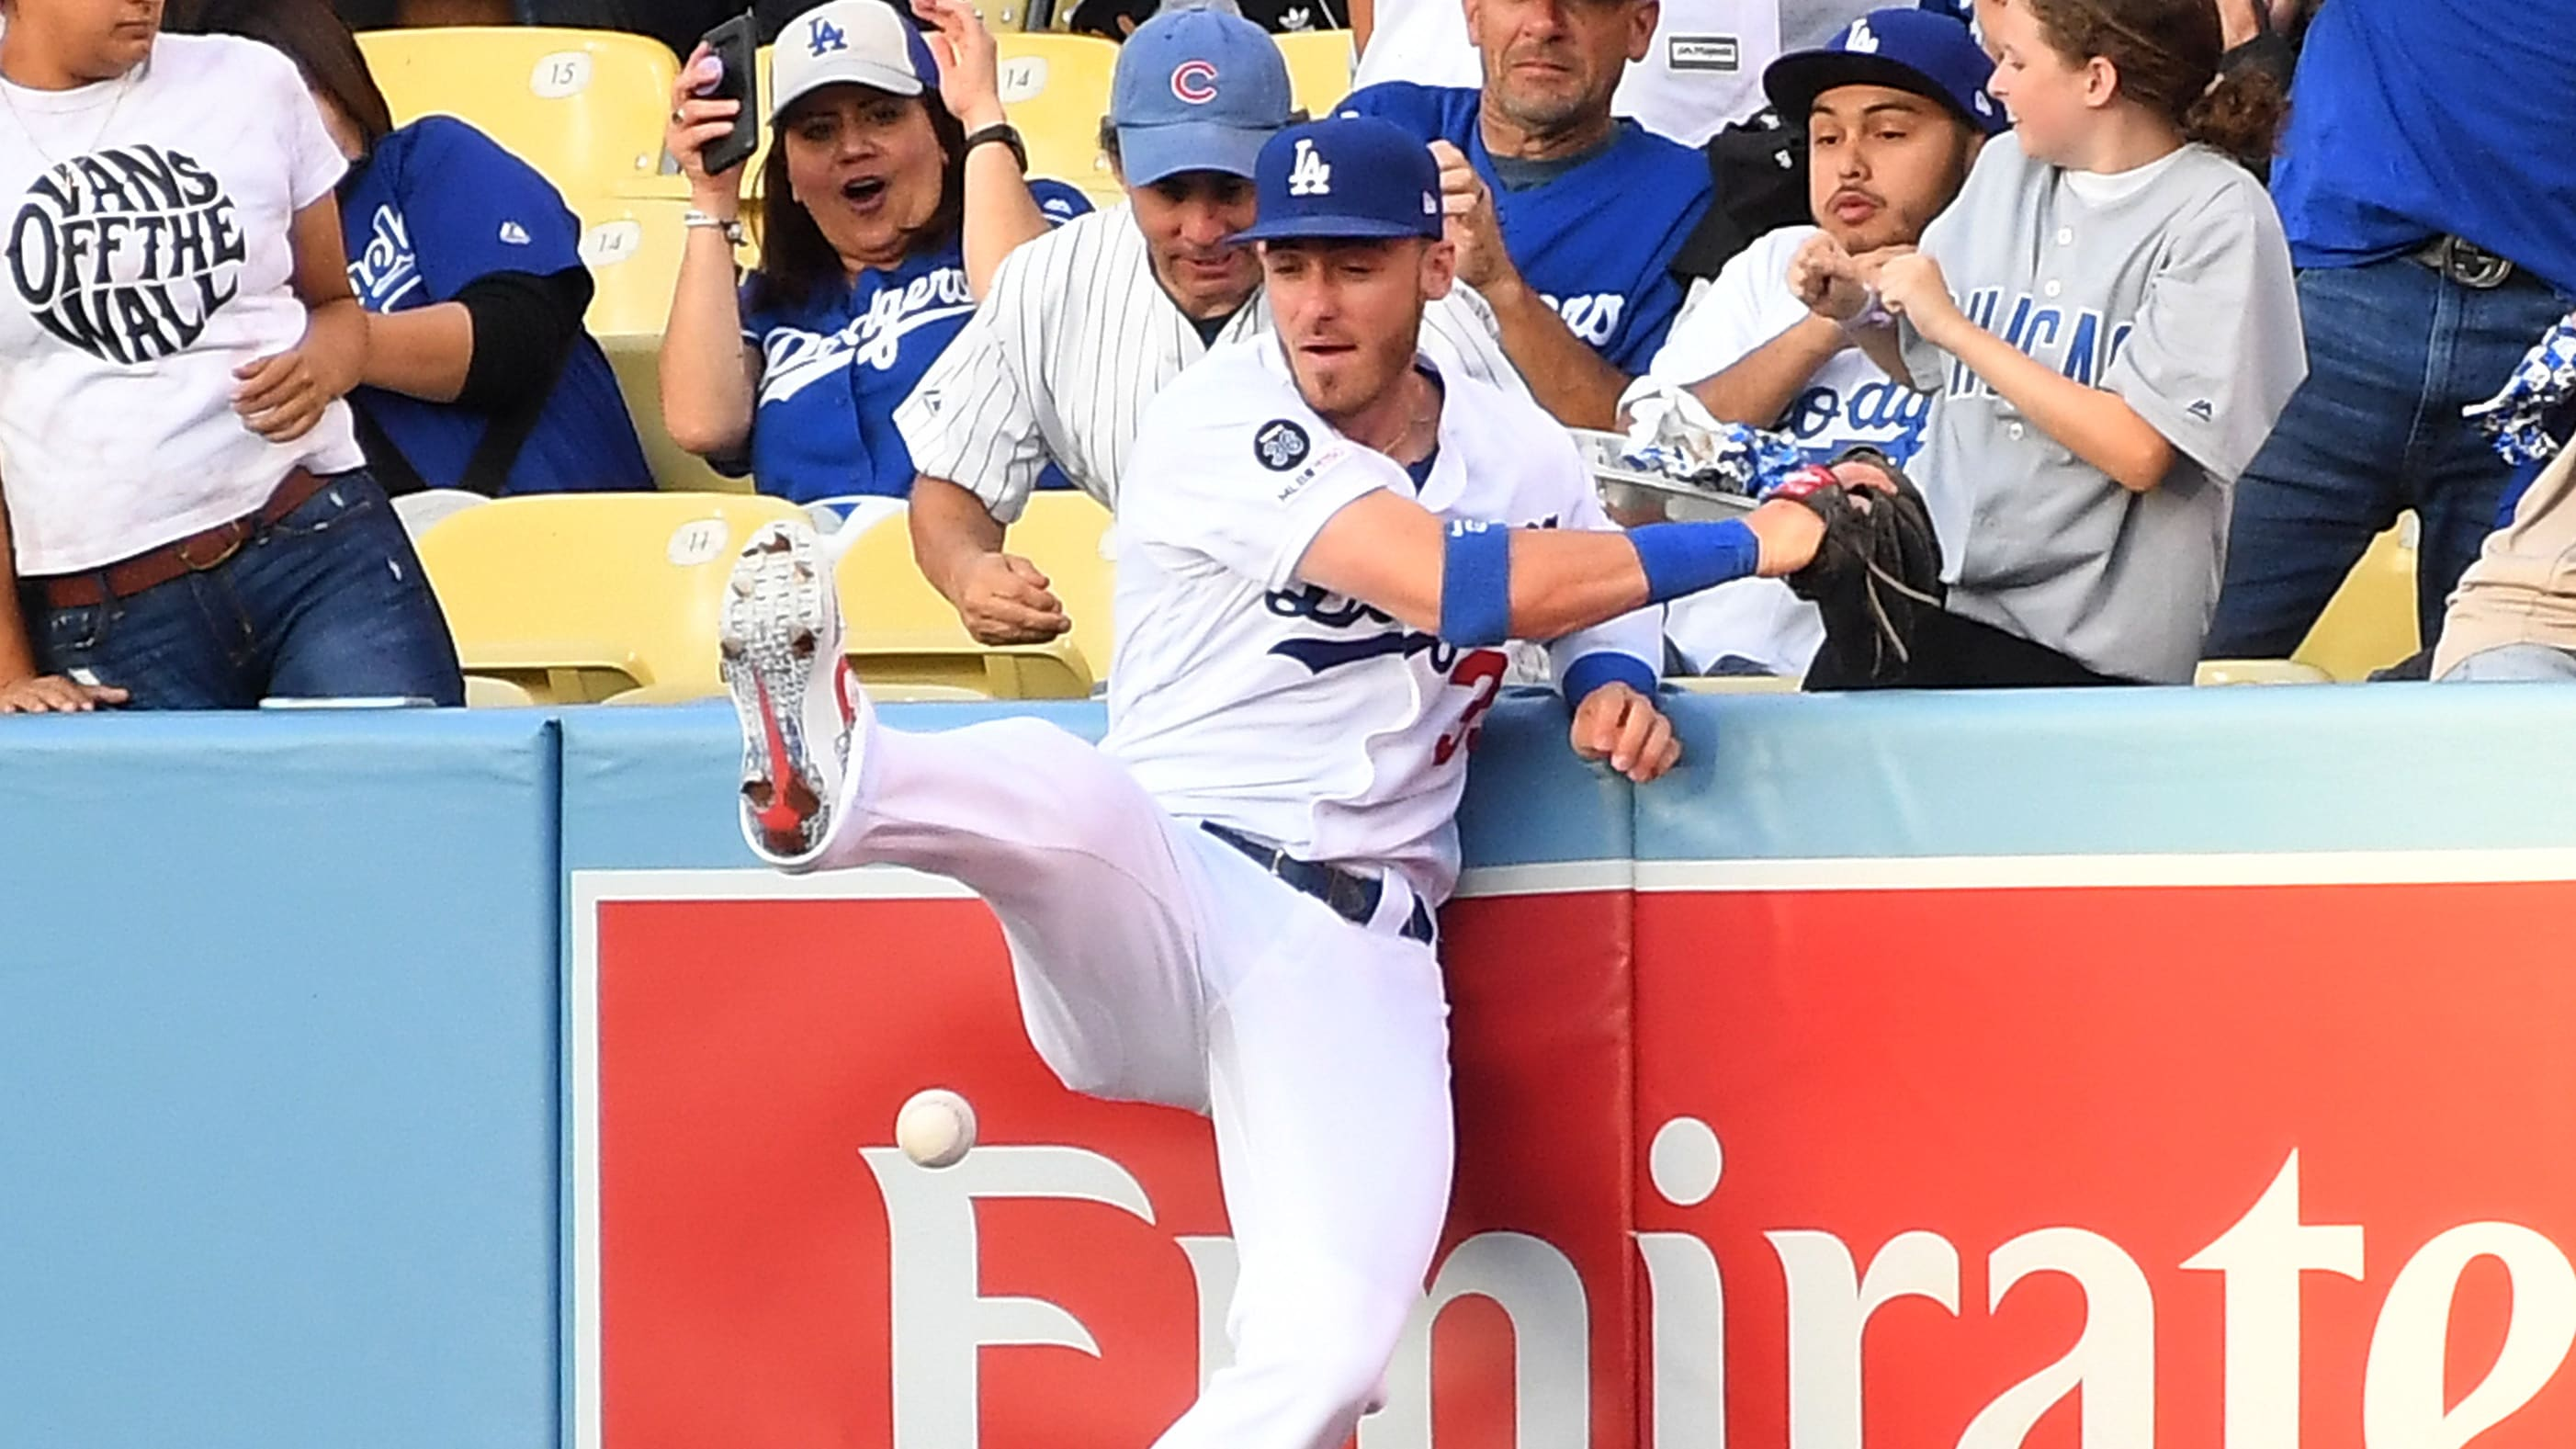 LOS ANGELES, CA - JUNE 14: Cody Bellinger #35 of the Los Angeles Dodgers can't come up with a ball hit by Kyle Schwarber #12 of the Chicago Cubs for a two run home run in the first inning of the game at Dodger Stadium on June 14, 2019 in Los Angeles, California. (Photo by Jayne Kamin-Oncea/Getty Images)